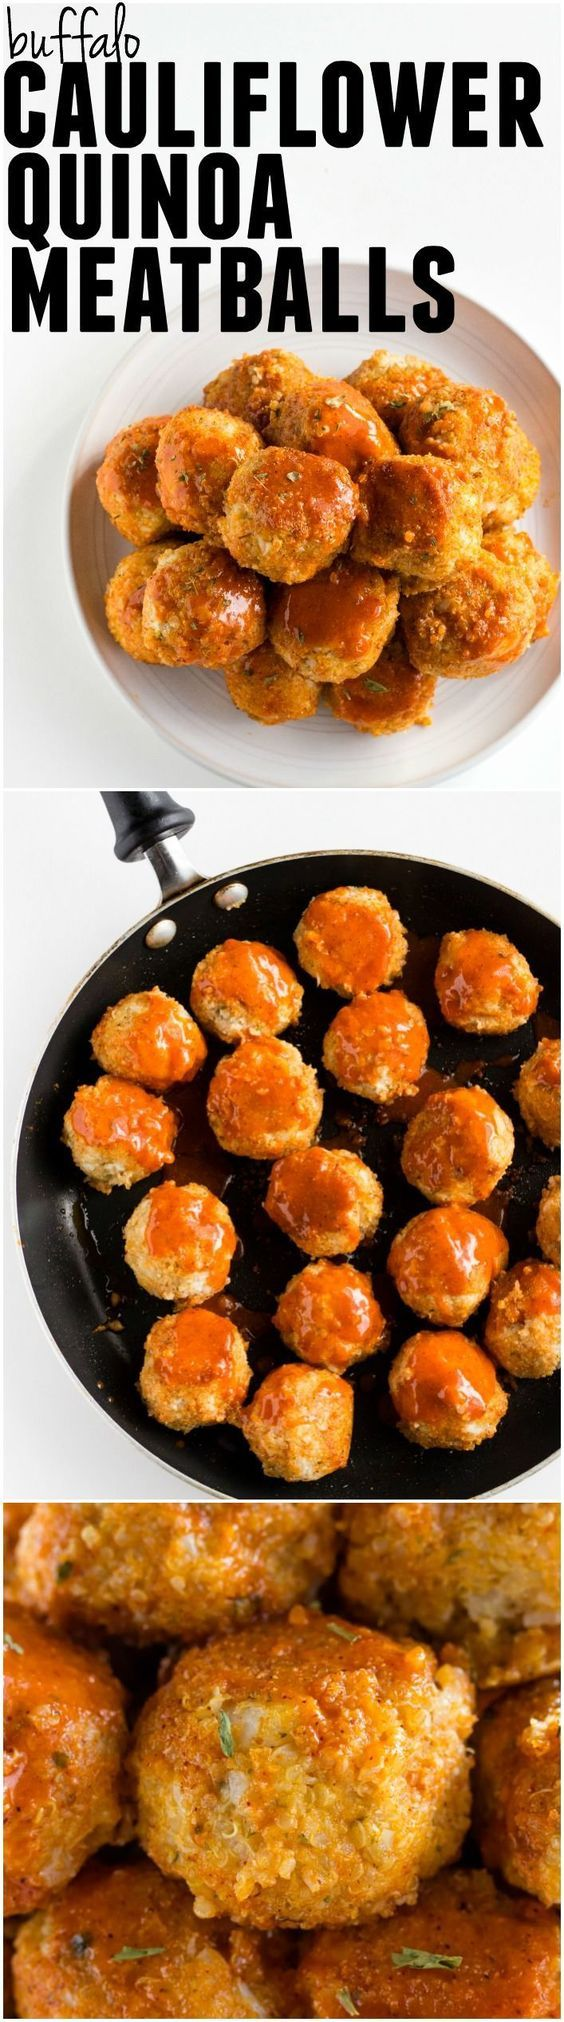 Buffalo Cauliflower Quinoa Meatballs | Simple and delicious MEATLESS meatballs made from cauliflower and quinoa! | http://thealmondeater.com #vegan